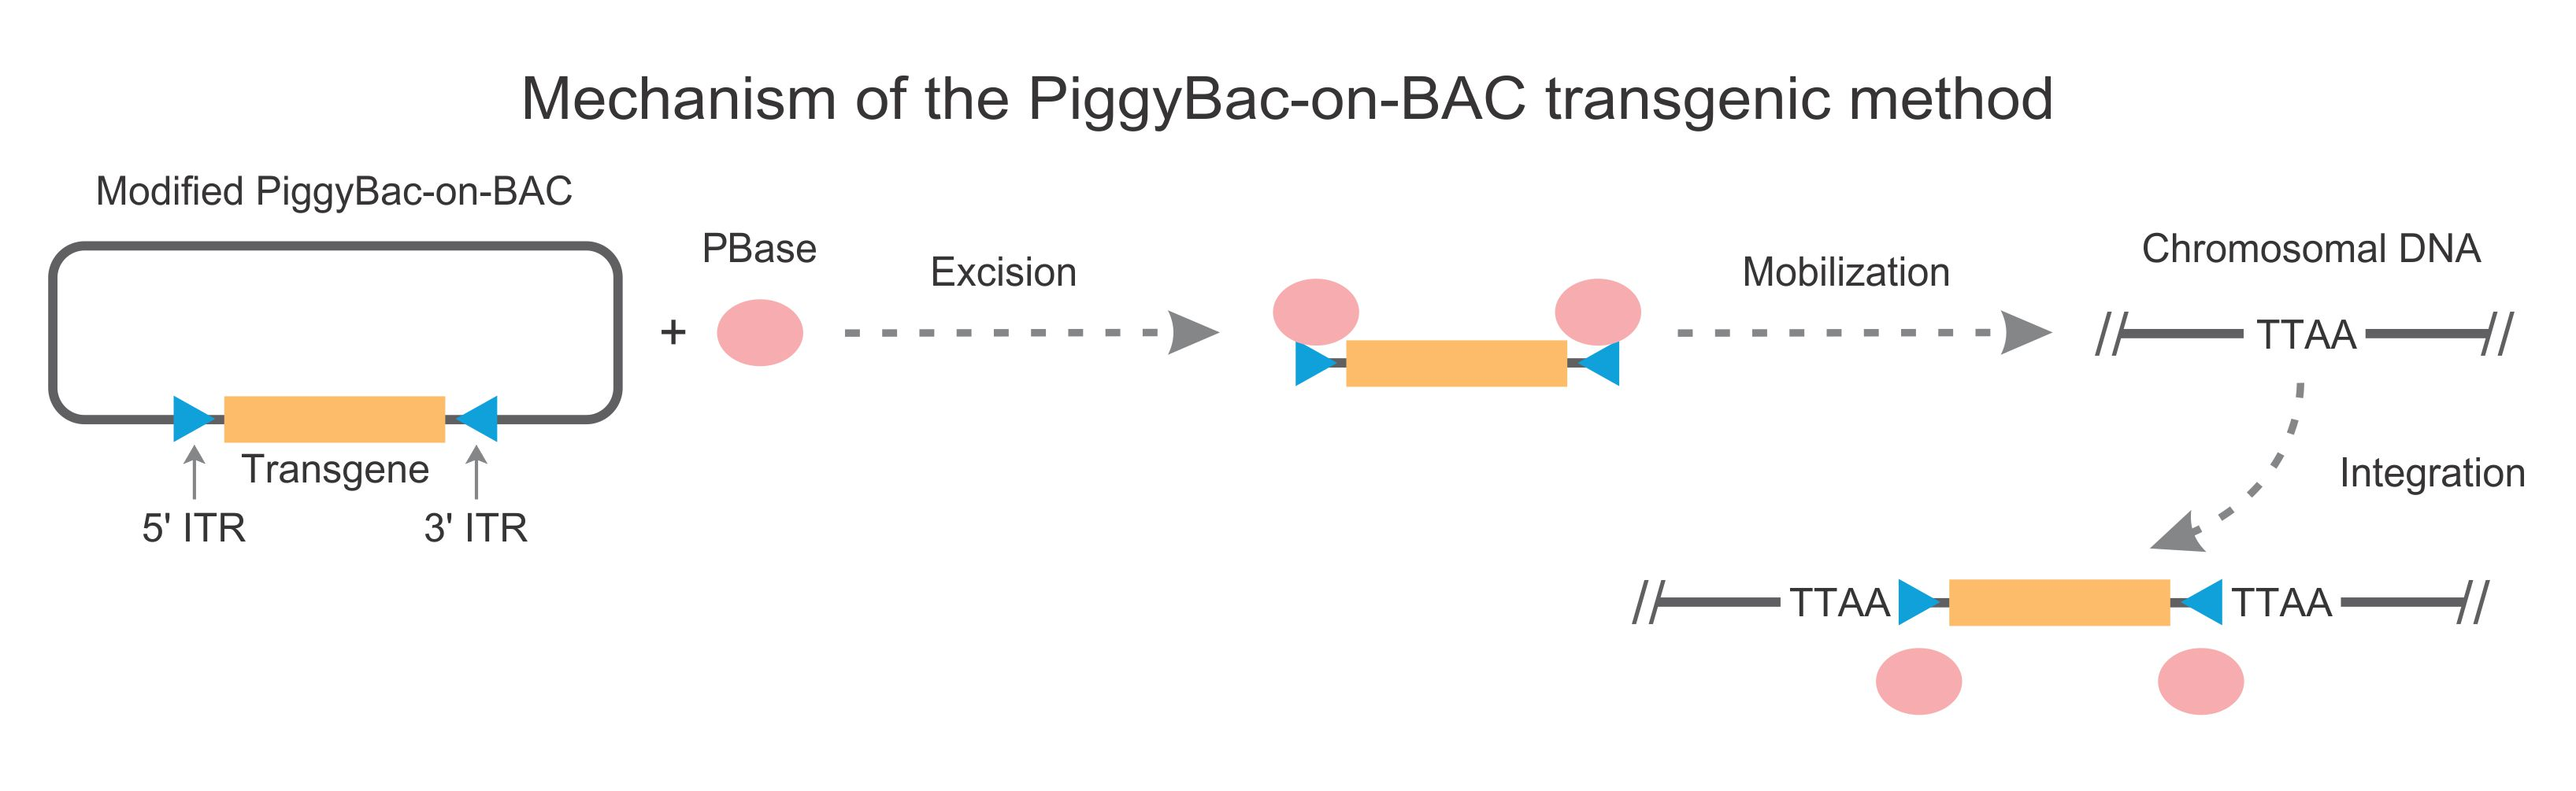 mechanism of the Piggybac-on-BAc transgenic method